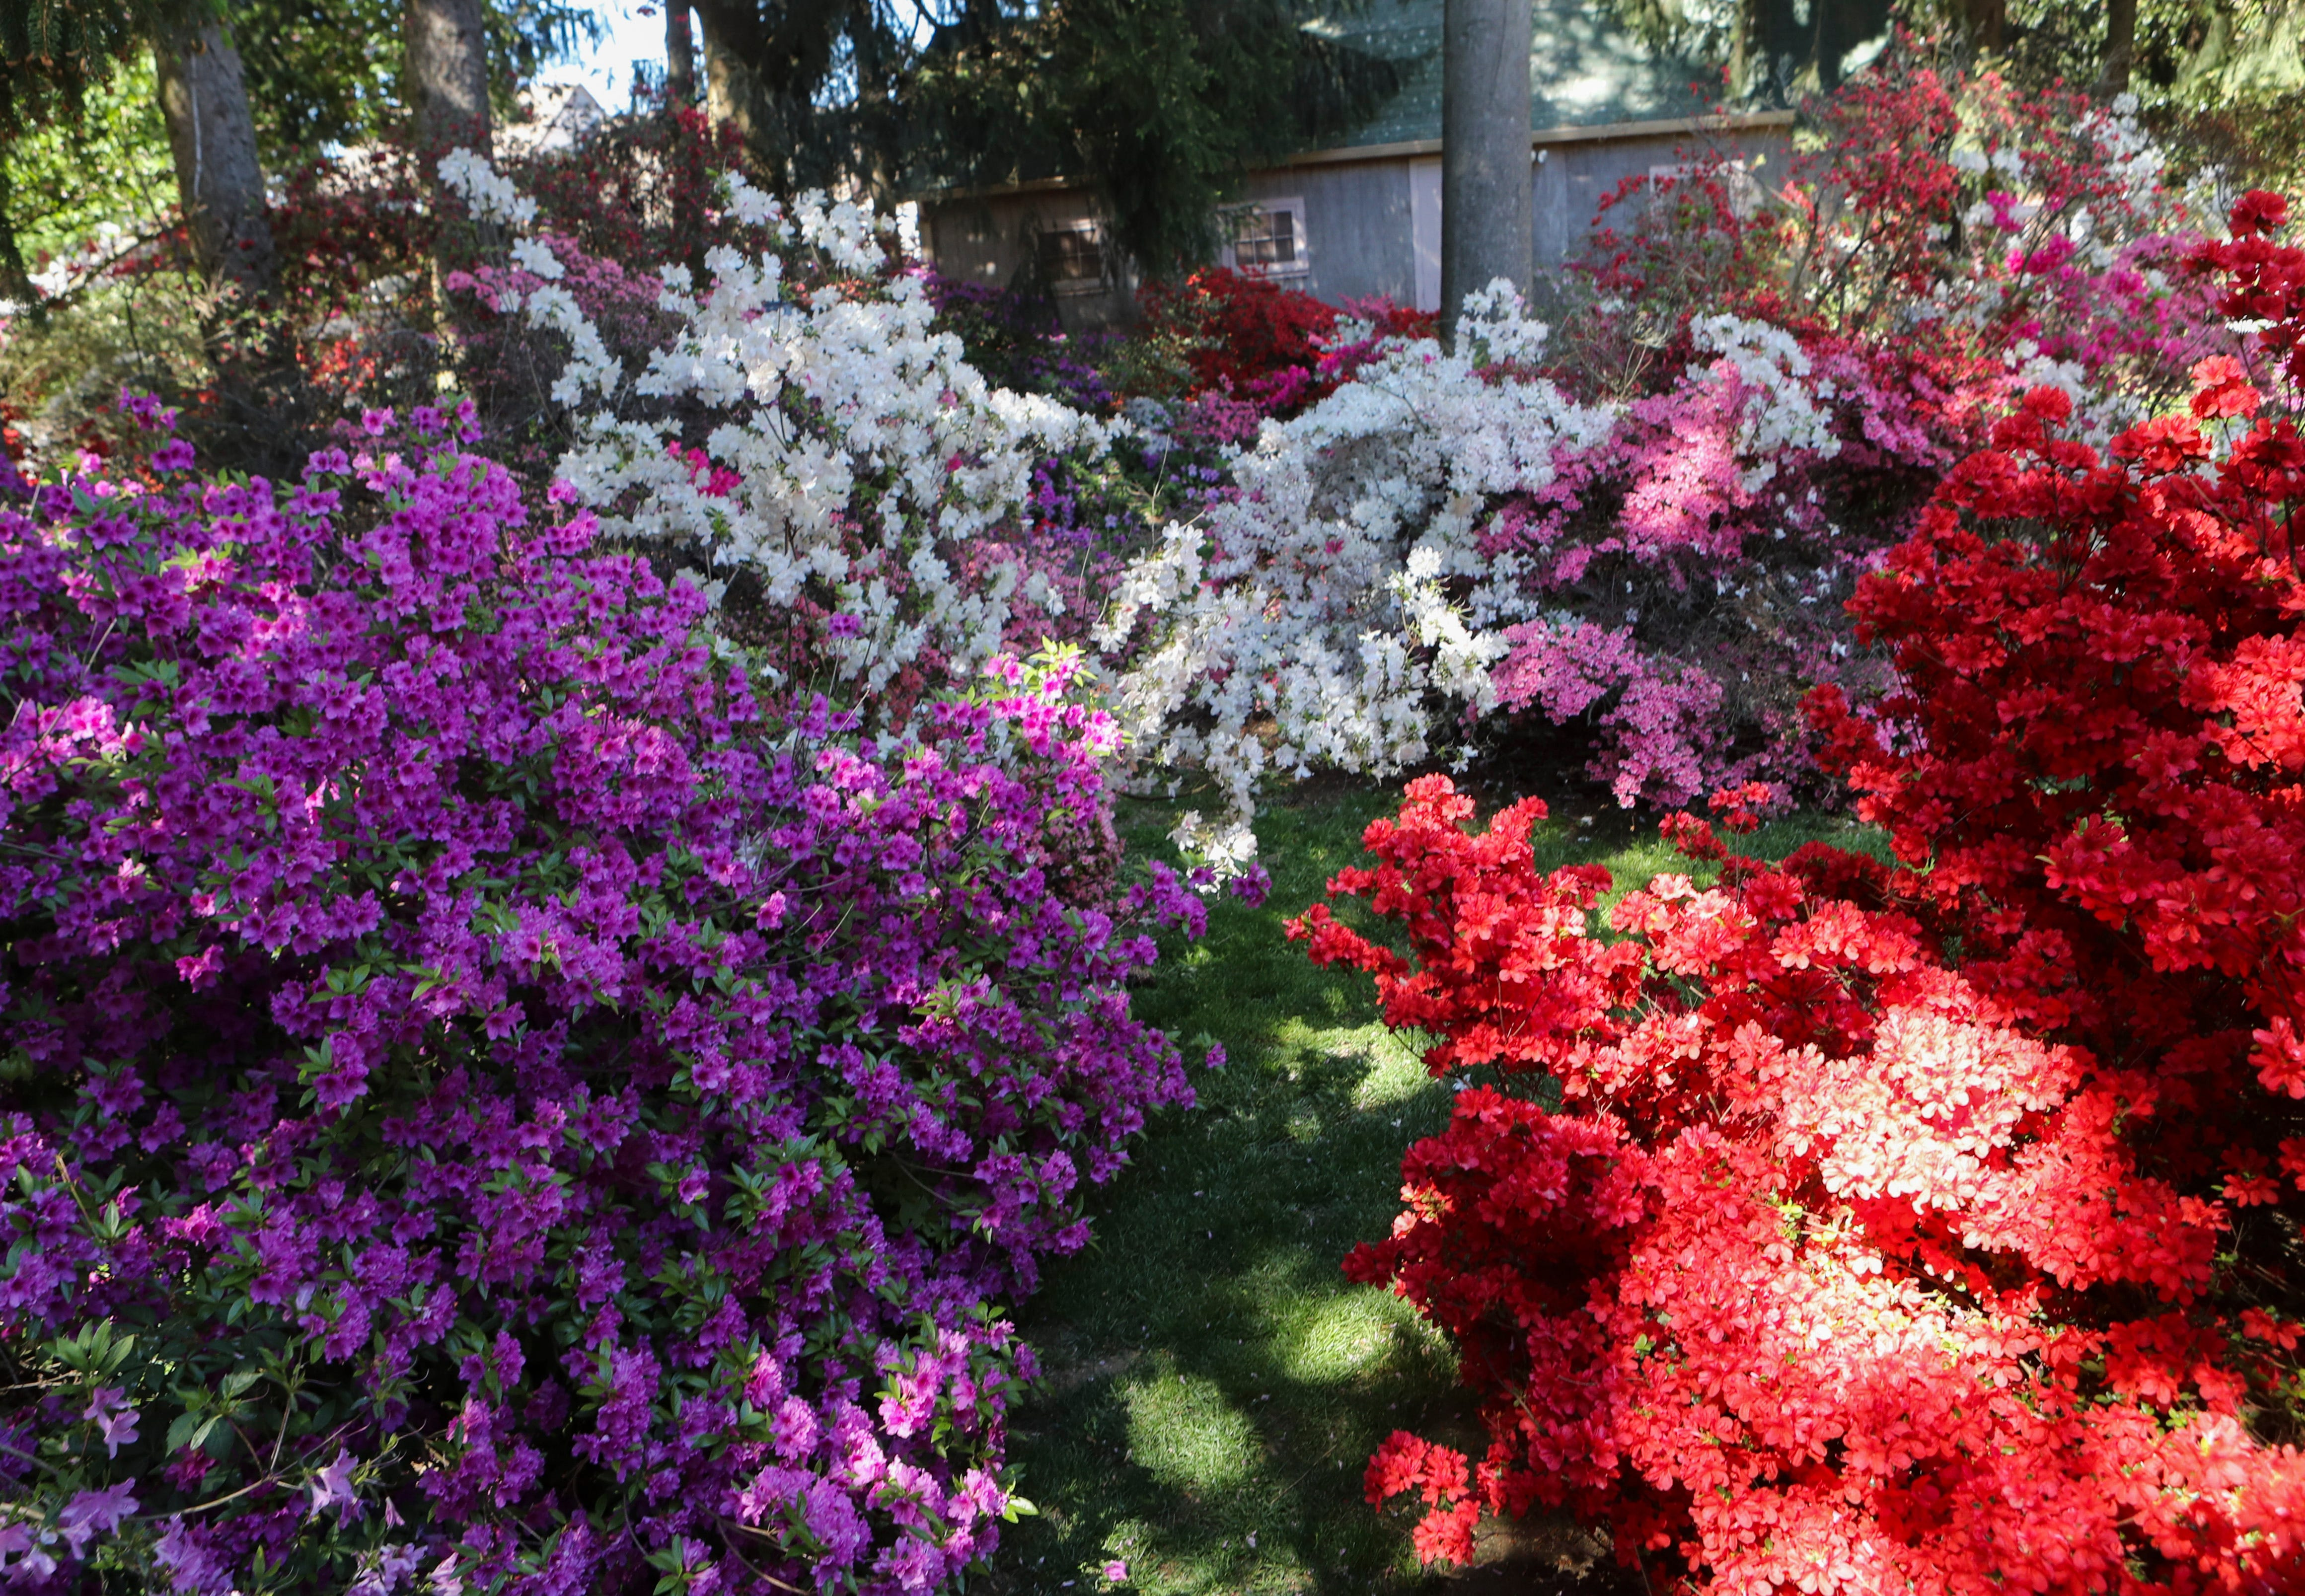 Odessa in the Spring: 1700 azaleas and countless admirers